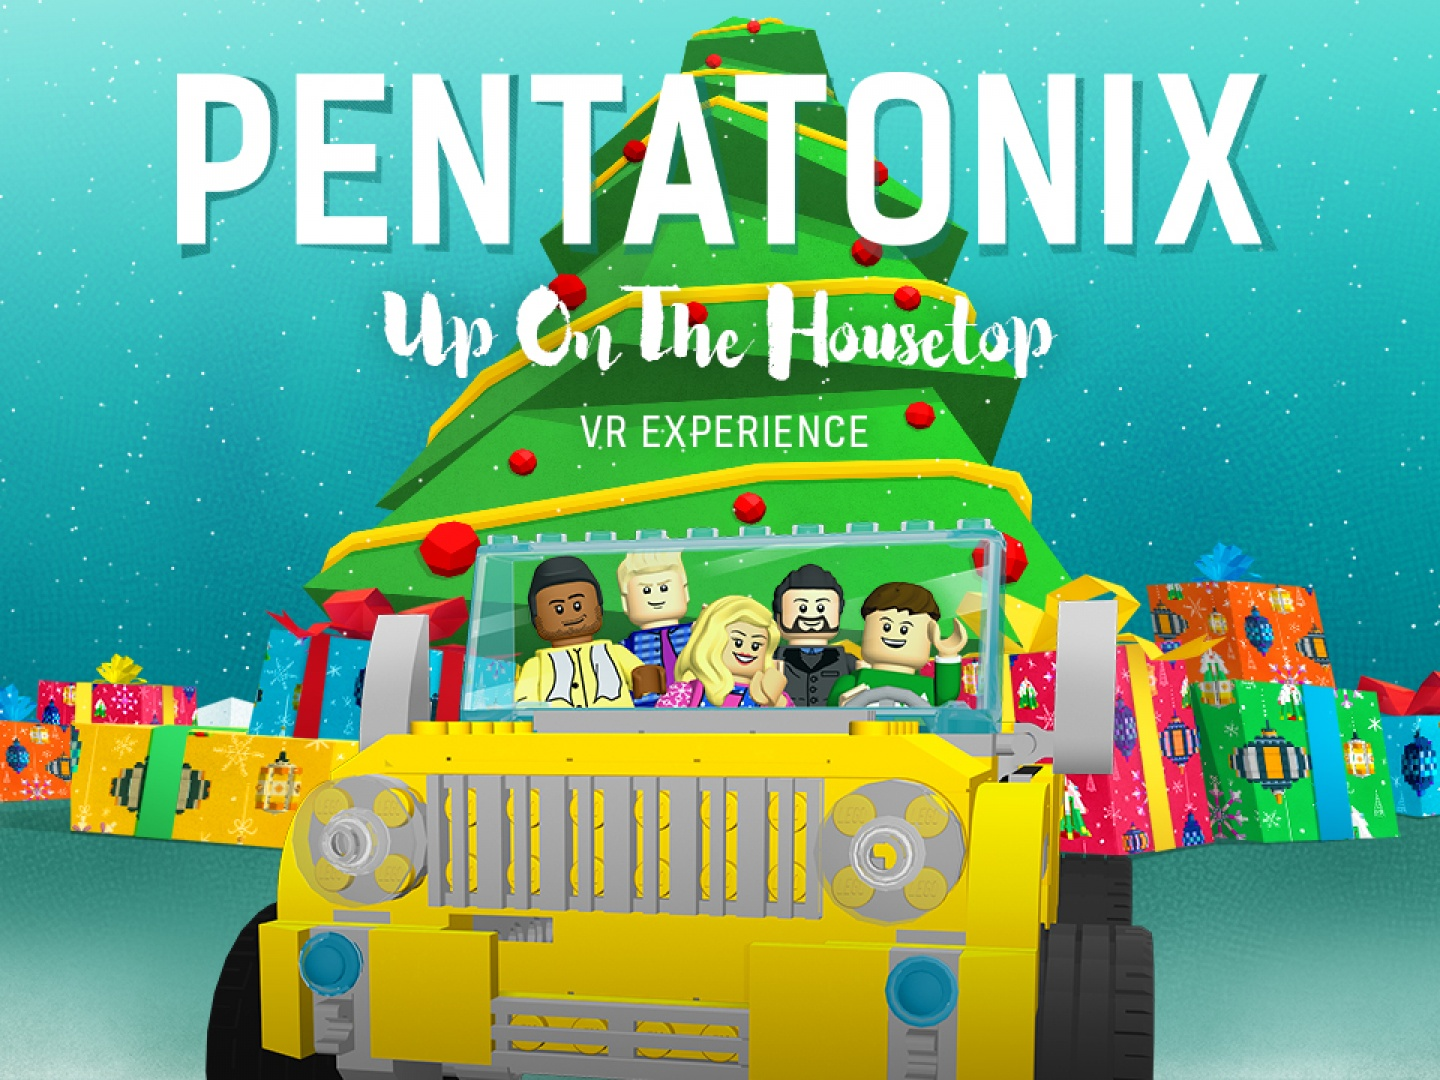 Pentatonix and Lego Integrated Campaign Thumbnail